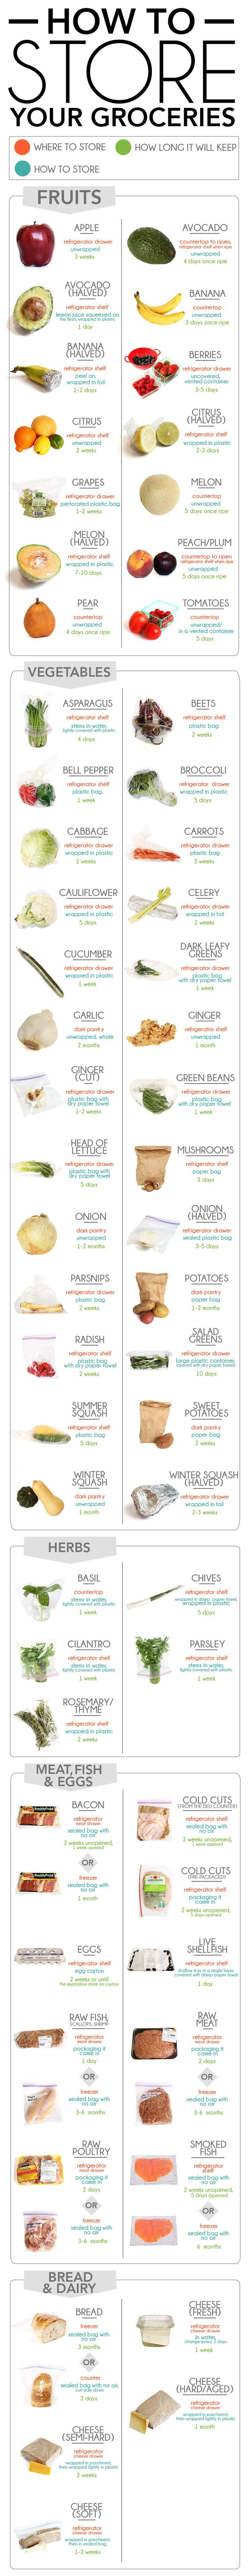 This Is Exactly How To Store Your Groceries Everything you need to know about where and how to store the food in your kitchen. posted on Sept. 30, 2014, Christine Byrne BuzzFeed Staff JennyChang BuzzFeed Staff #infographics